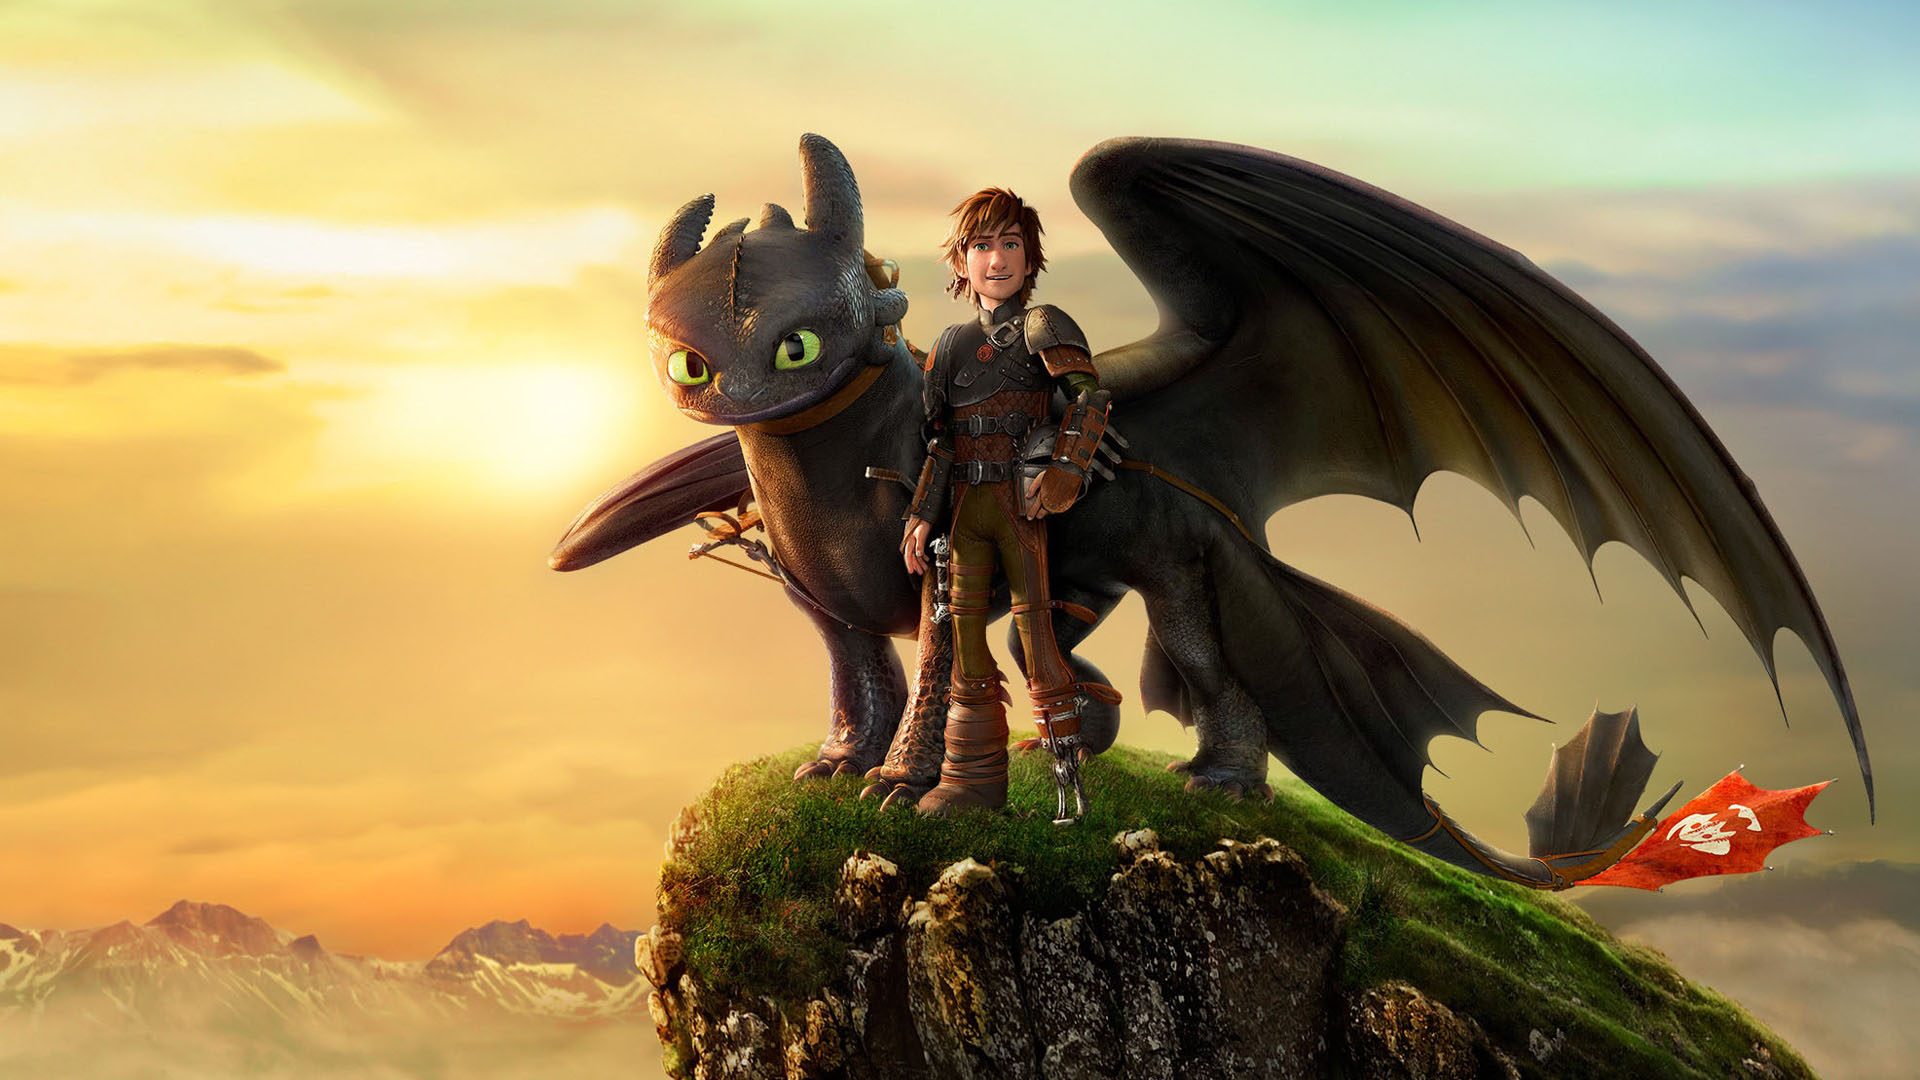 Howtotrainyourdragon2wallpapernew